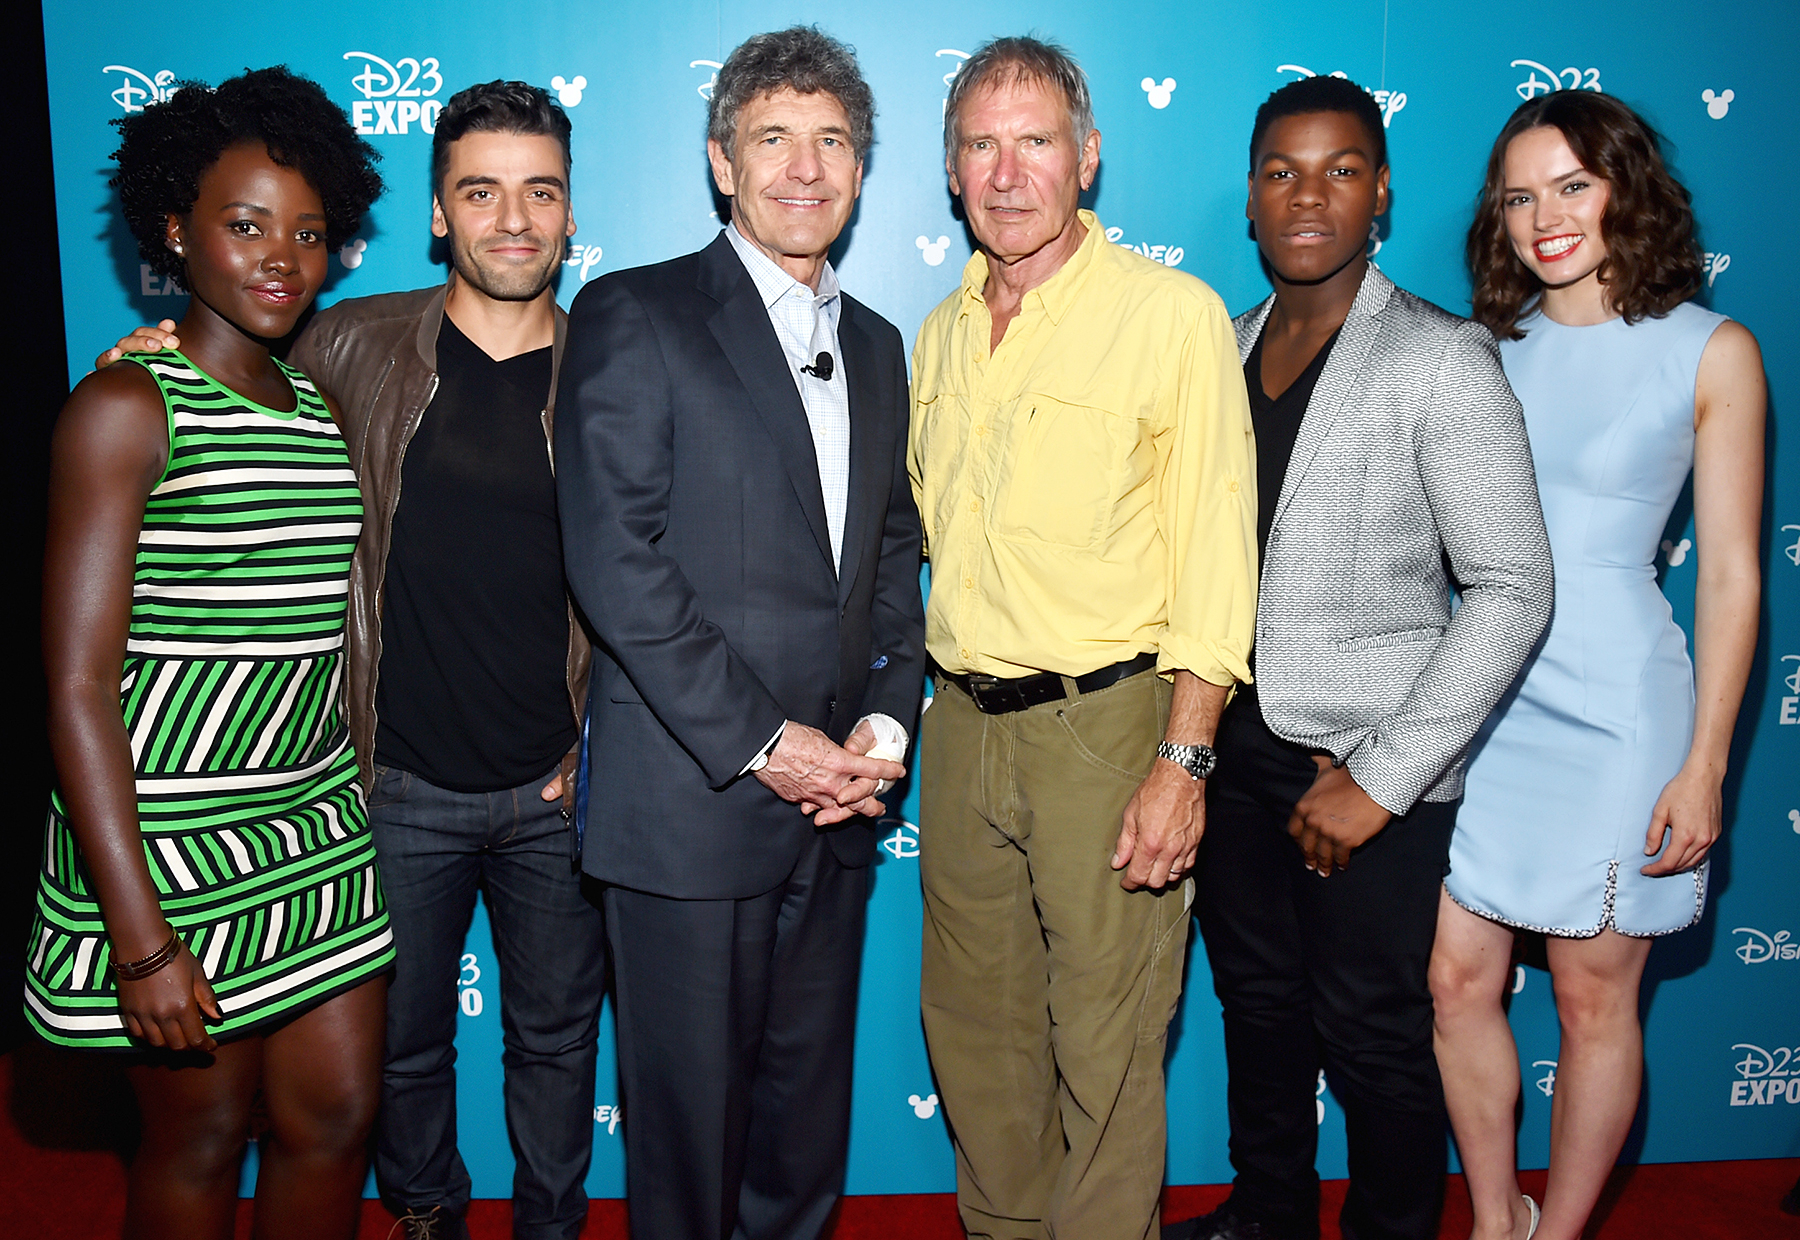 Lupita Nyong'o, Oscar Isaac, Harrison Ford, John Boyega and Daisy Ridley posed with Walt Disney Studios Chairman Alan Horn at an August 2015 event.